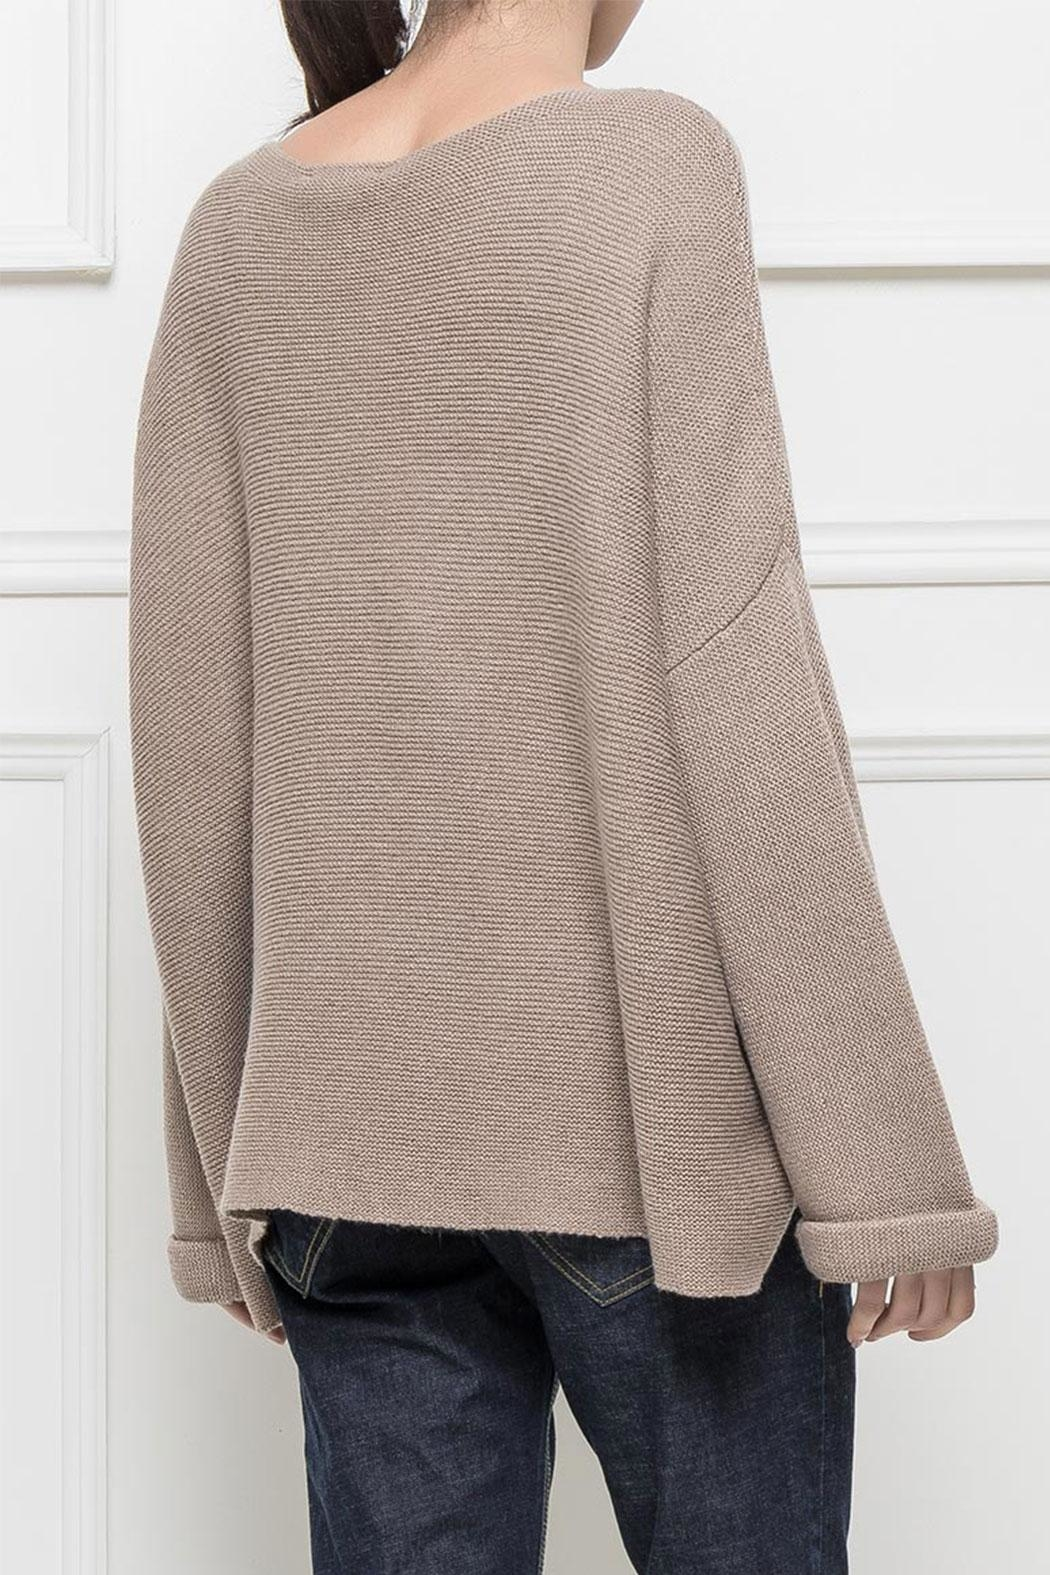 RYUJEE Placide Oversize Sweater - Back Cropped Image